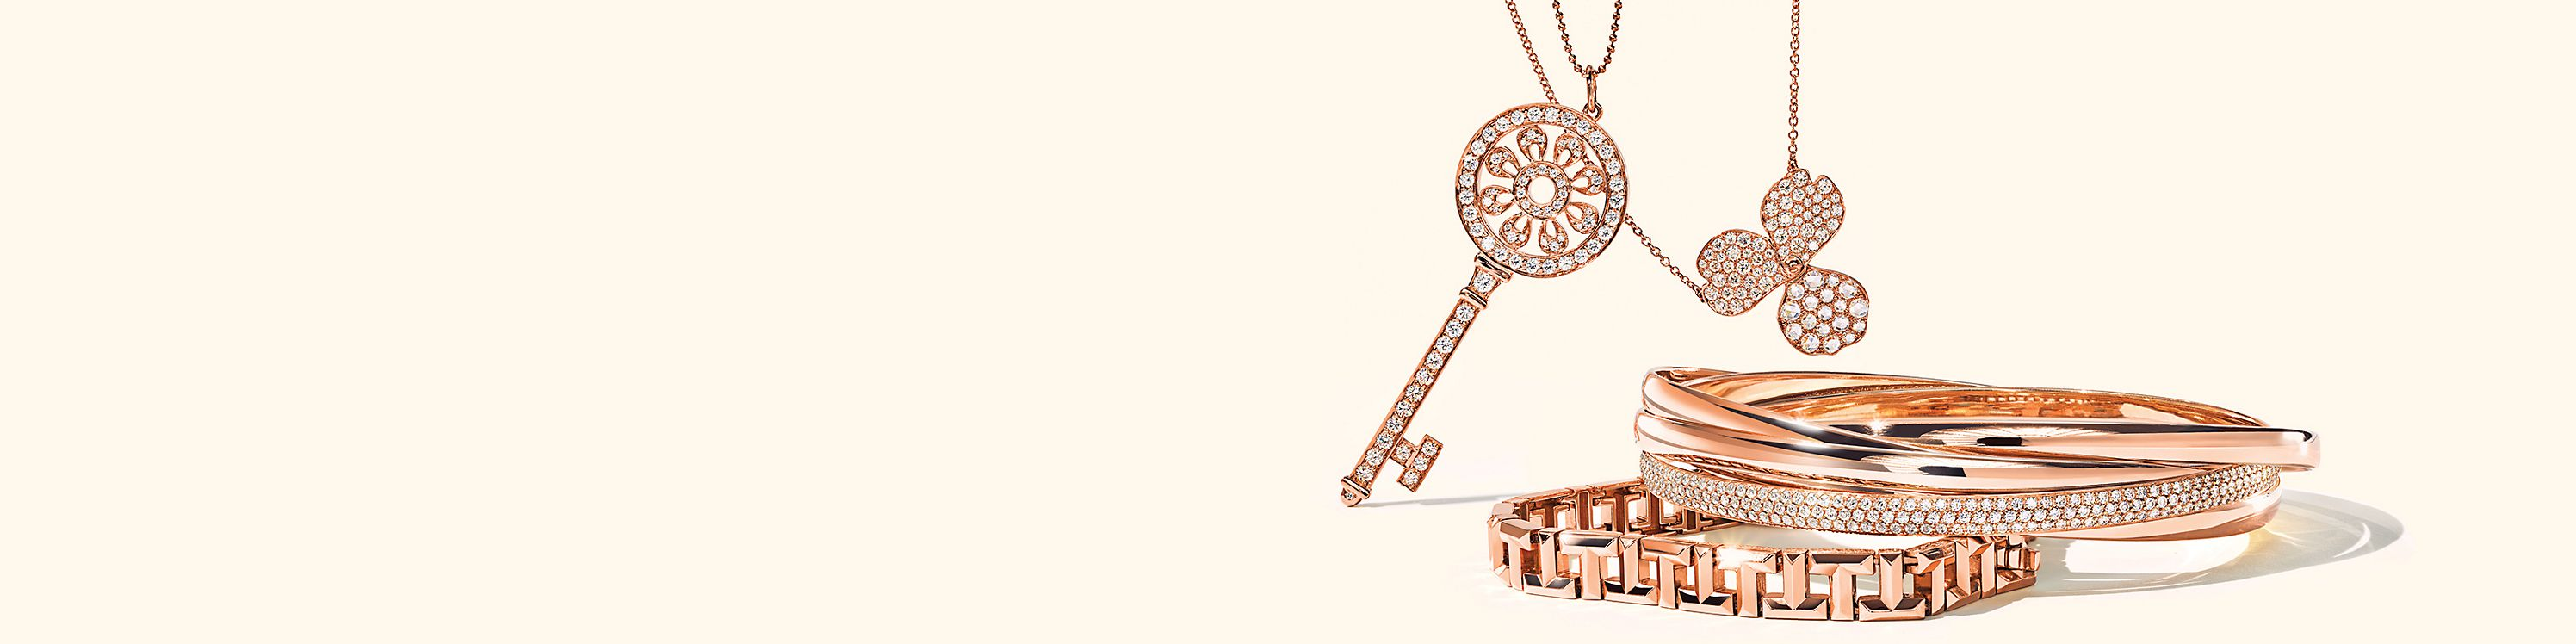 Tiffany & Co. Rose Gold Jewellery